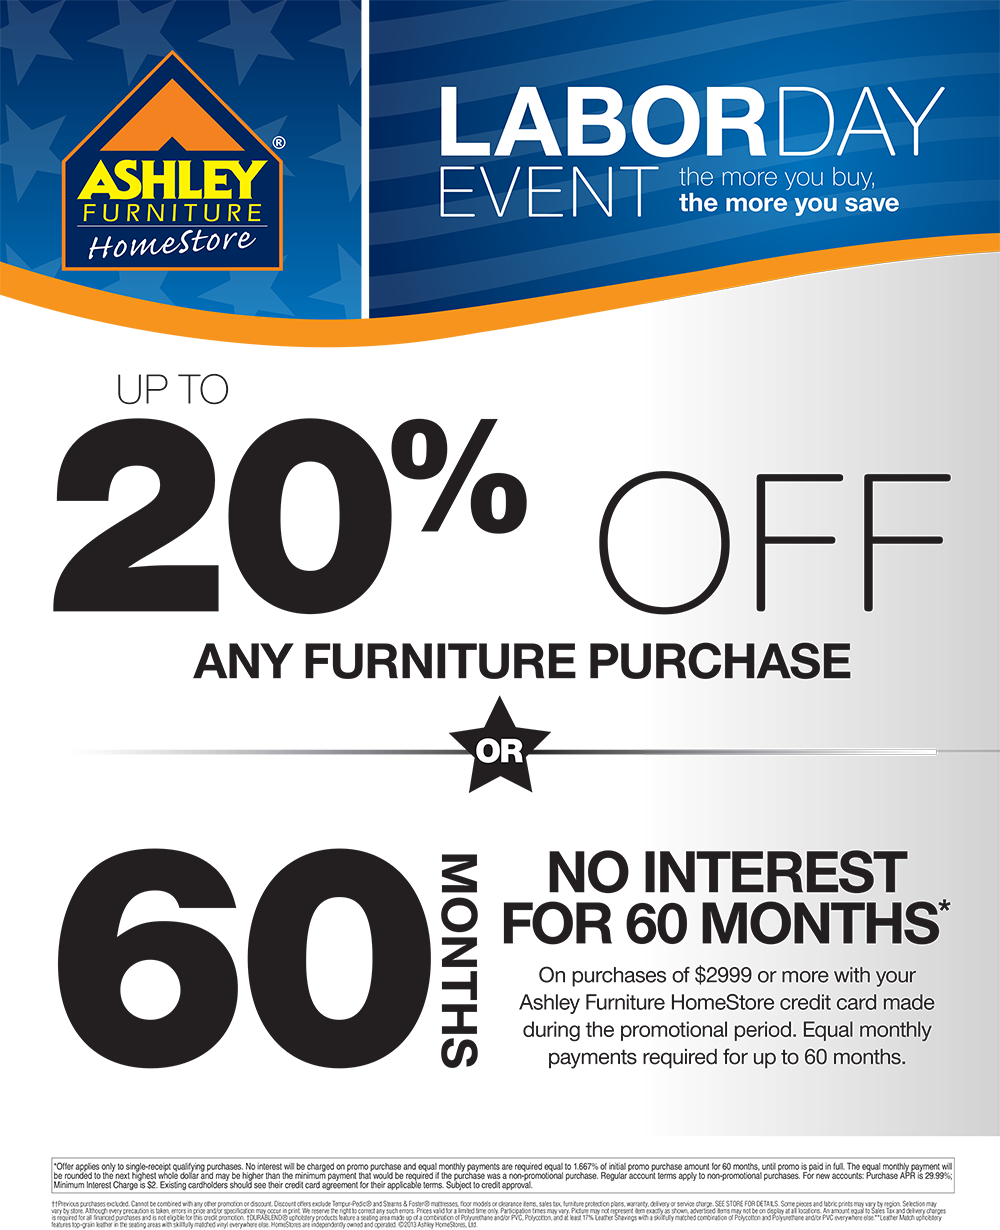 Labor day event going on right now at ashleyfurniture in richland wa august 20 2013 september 2 2013 furniture sale home laborday event